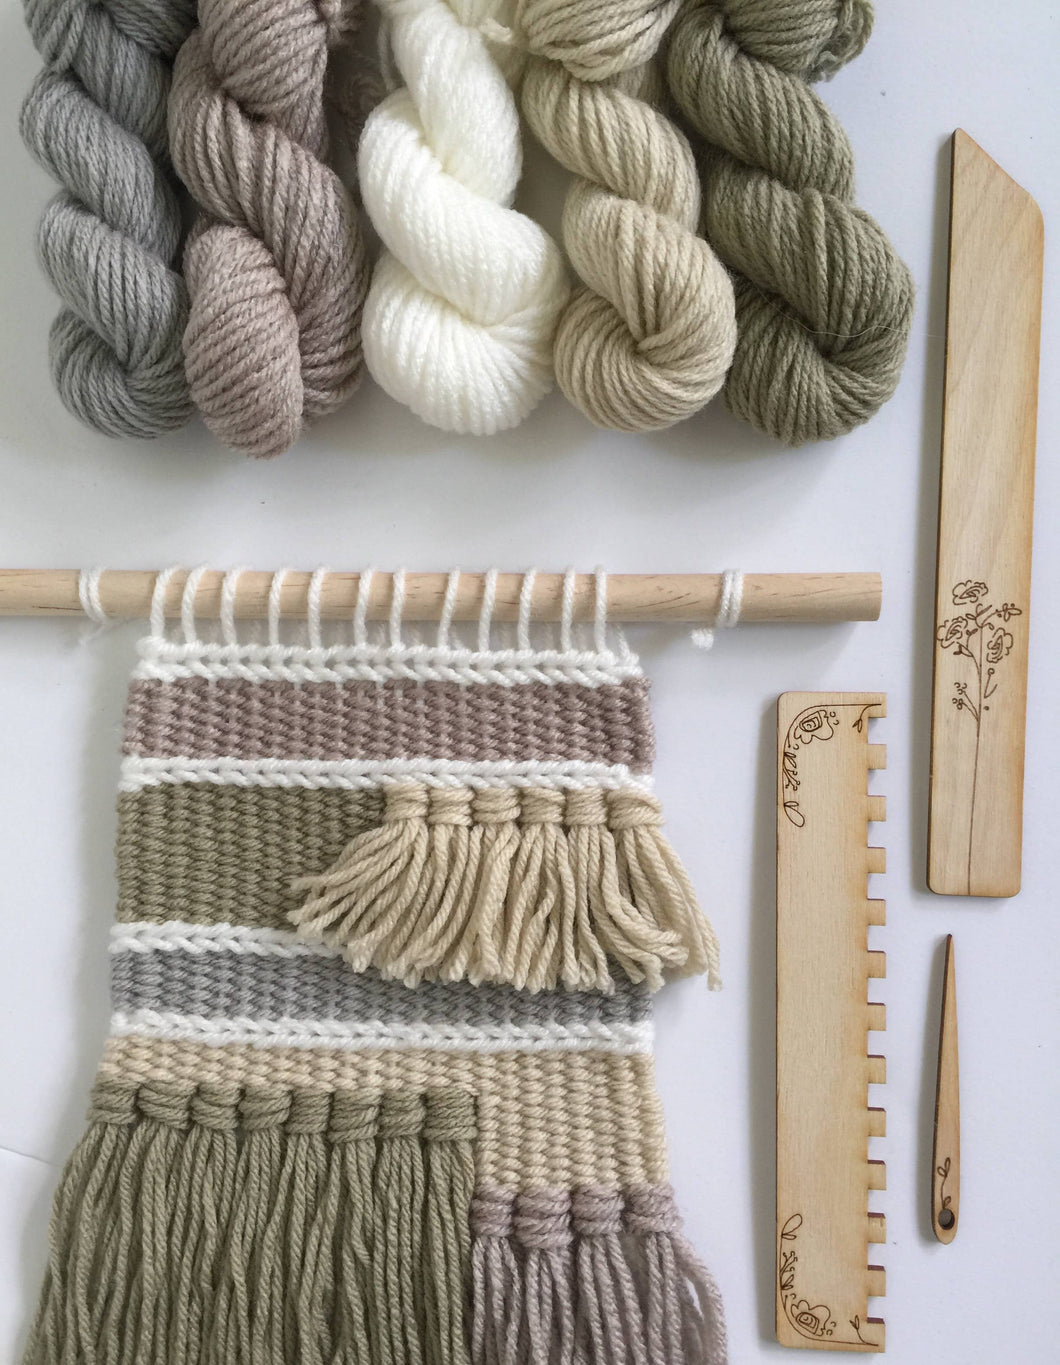 Black Sheep Goods - DIY Tapestry Weaving Kit - Natural